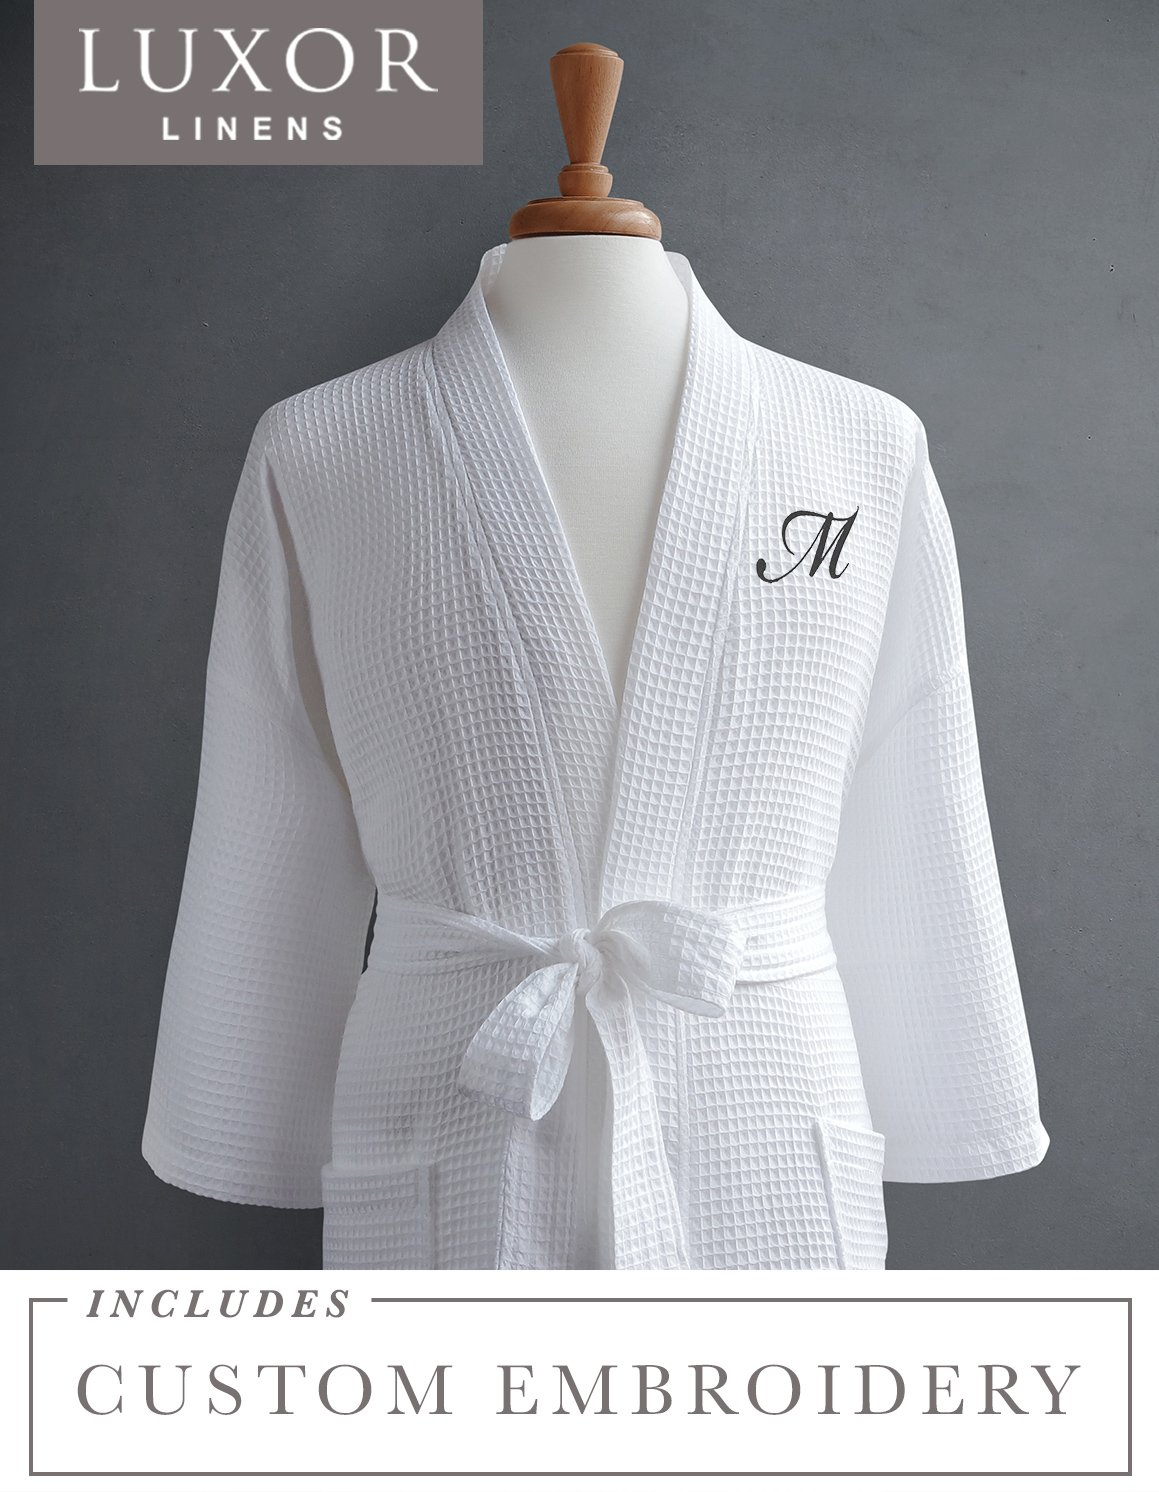 Luxor Linens Waffle Robe - 100% Egyptian Cotton - Unisex/One Size Fits Most - Waffle Weave, Spa Bathrobe, Luxurious, Soft, Plush - Perfect for All Seasons Giovanni Collection - 1-pc Customizable